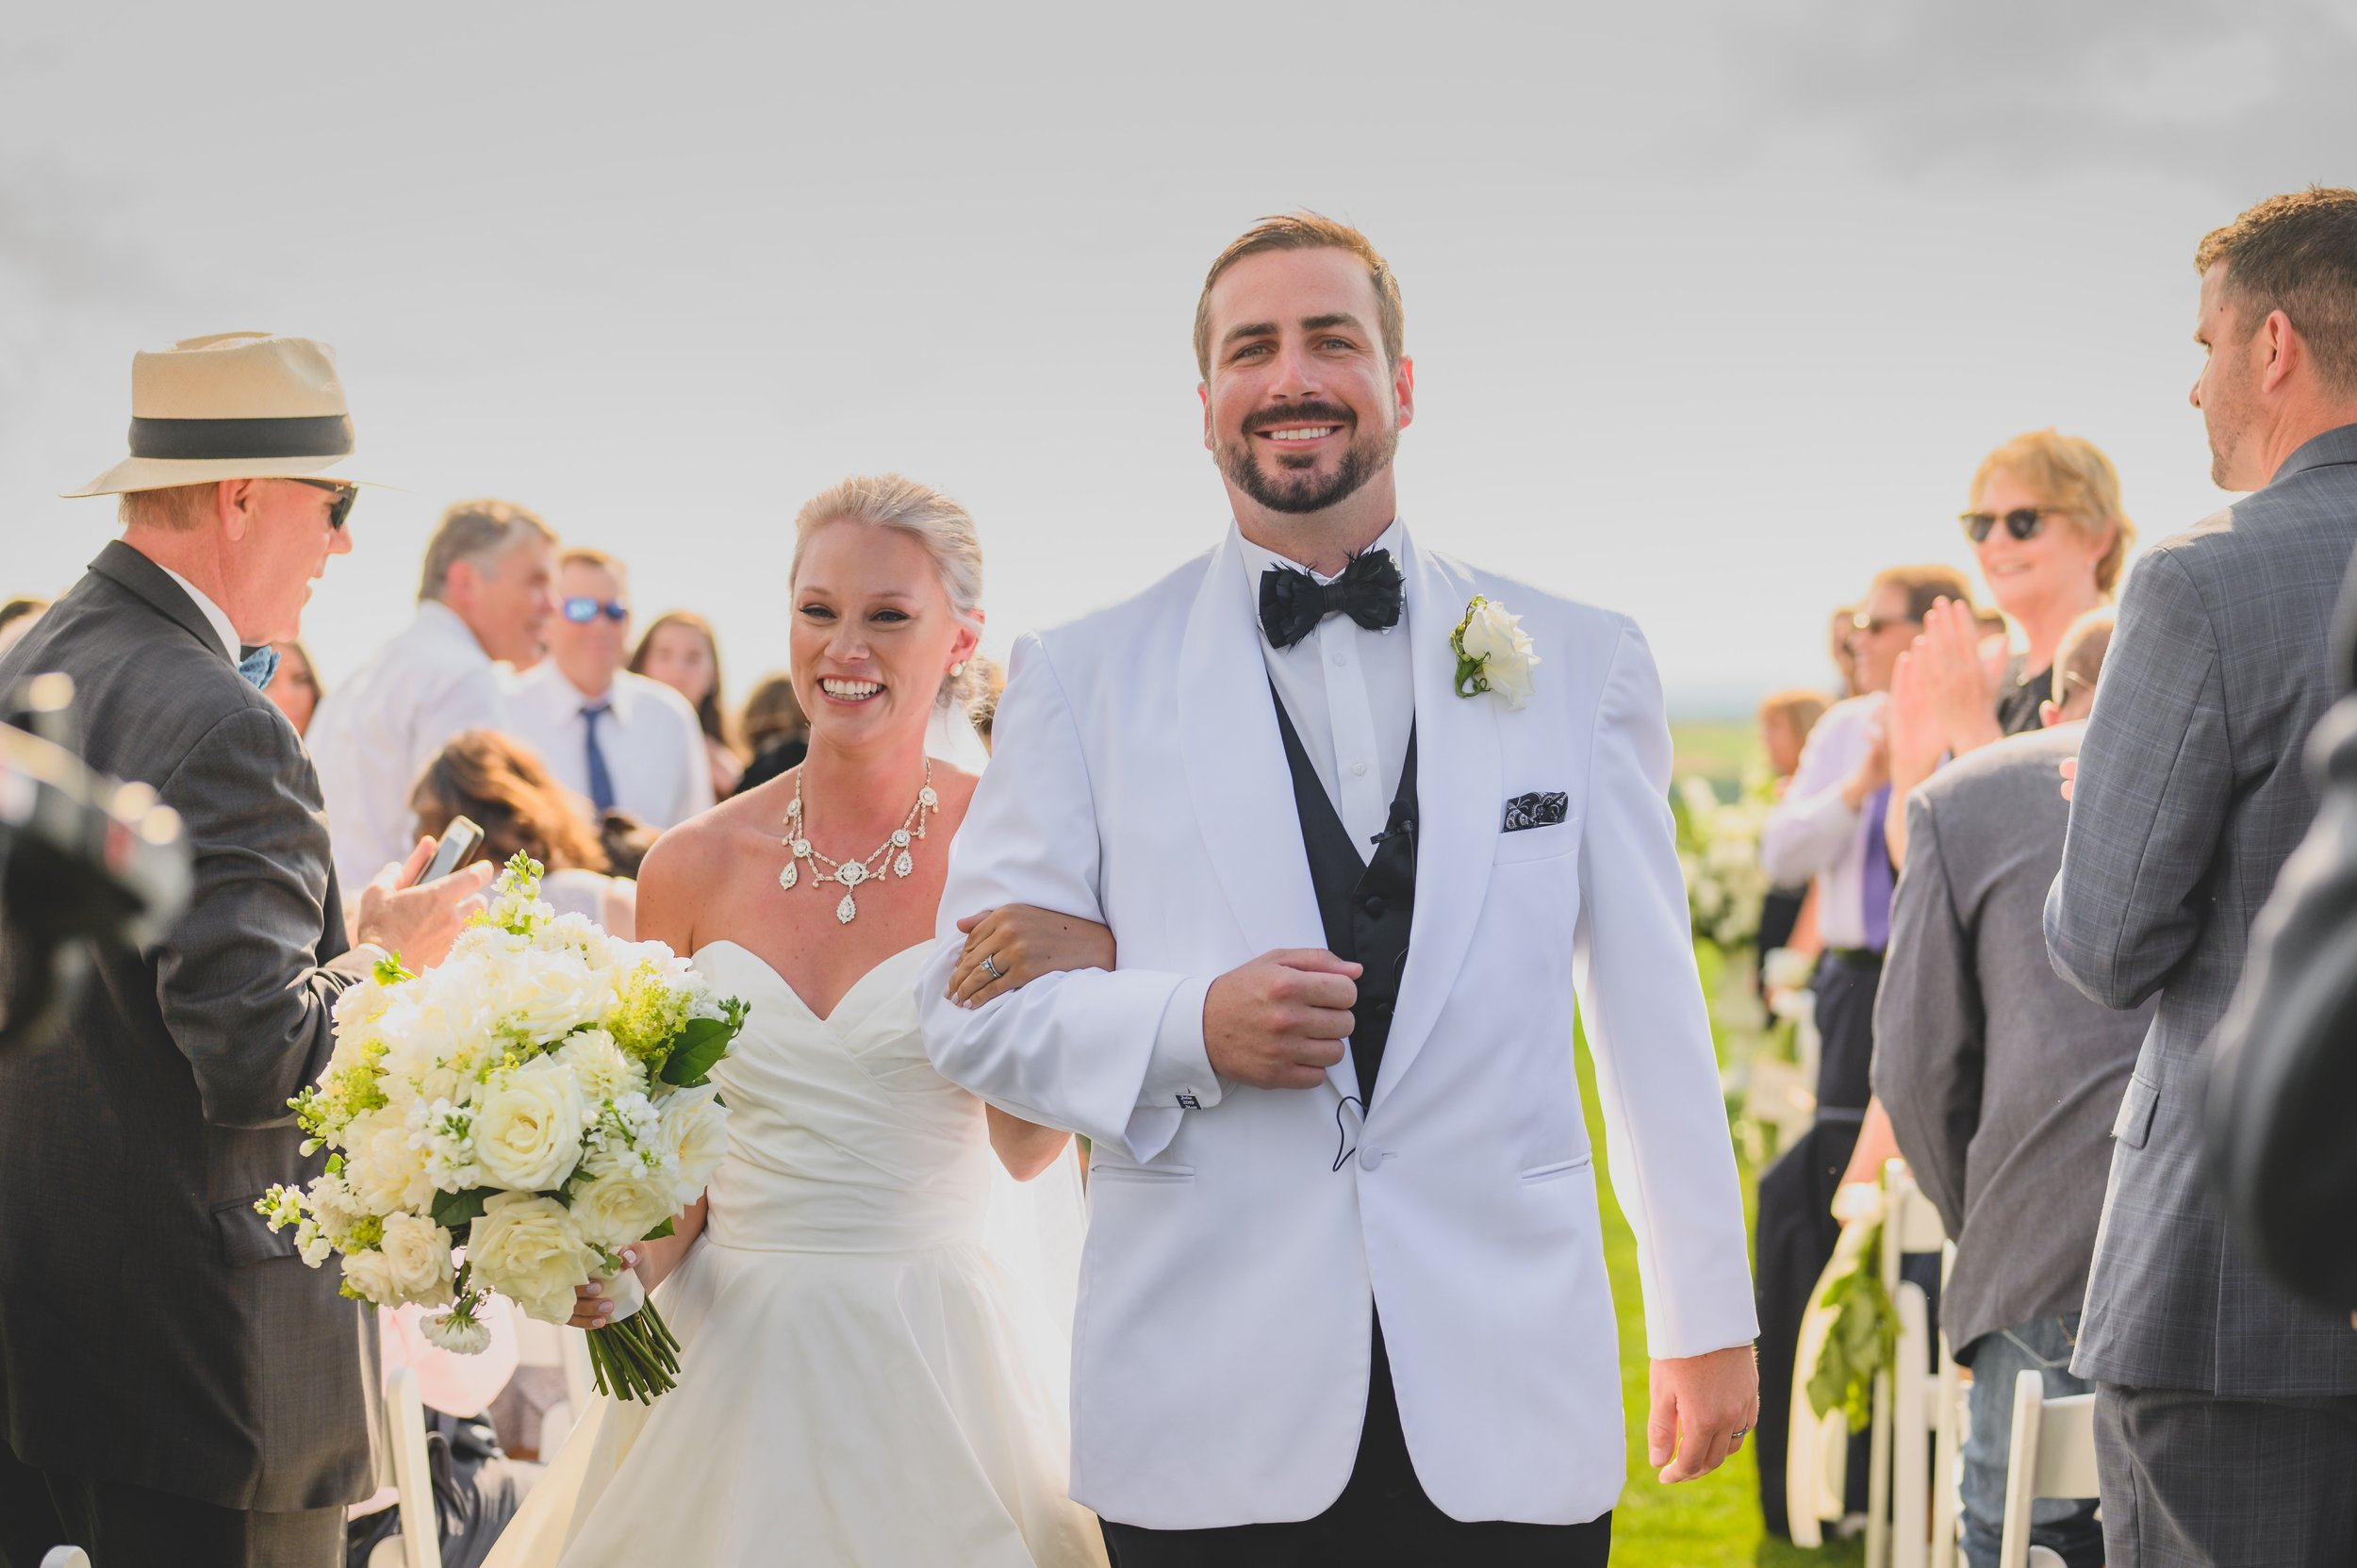 A groom in a white tux and his bride exiting their outdoor ceremony.